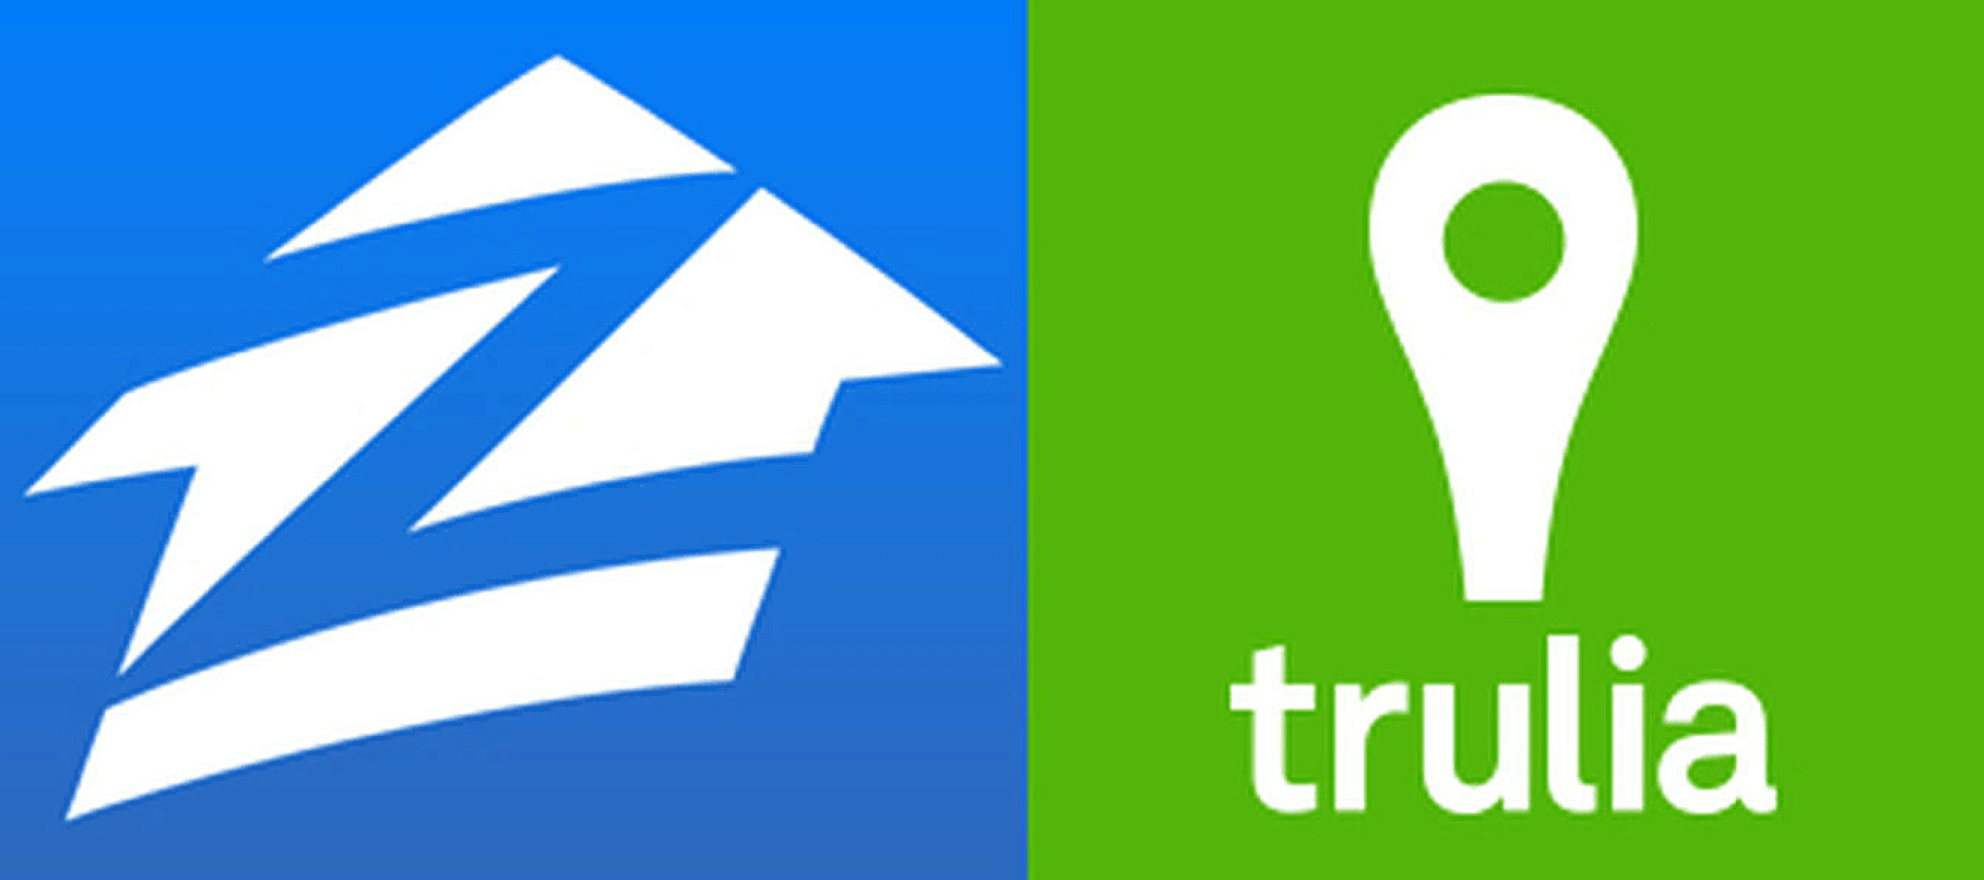 Zillow Logo - https://www.securities-research.com/blog/srcs-historic-charts-feature ...